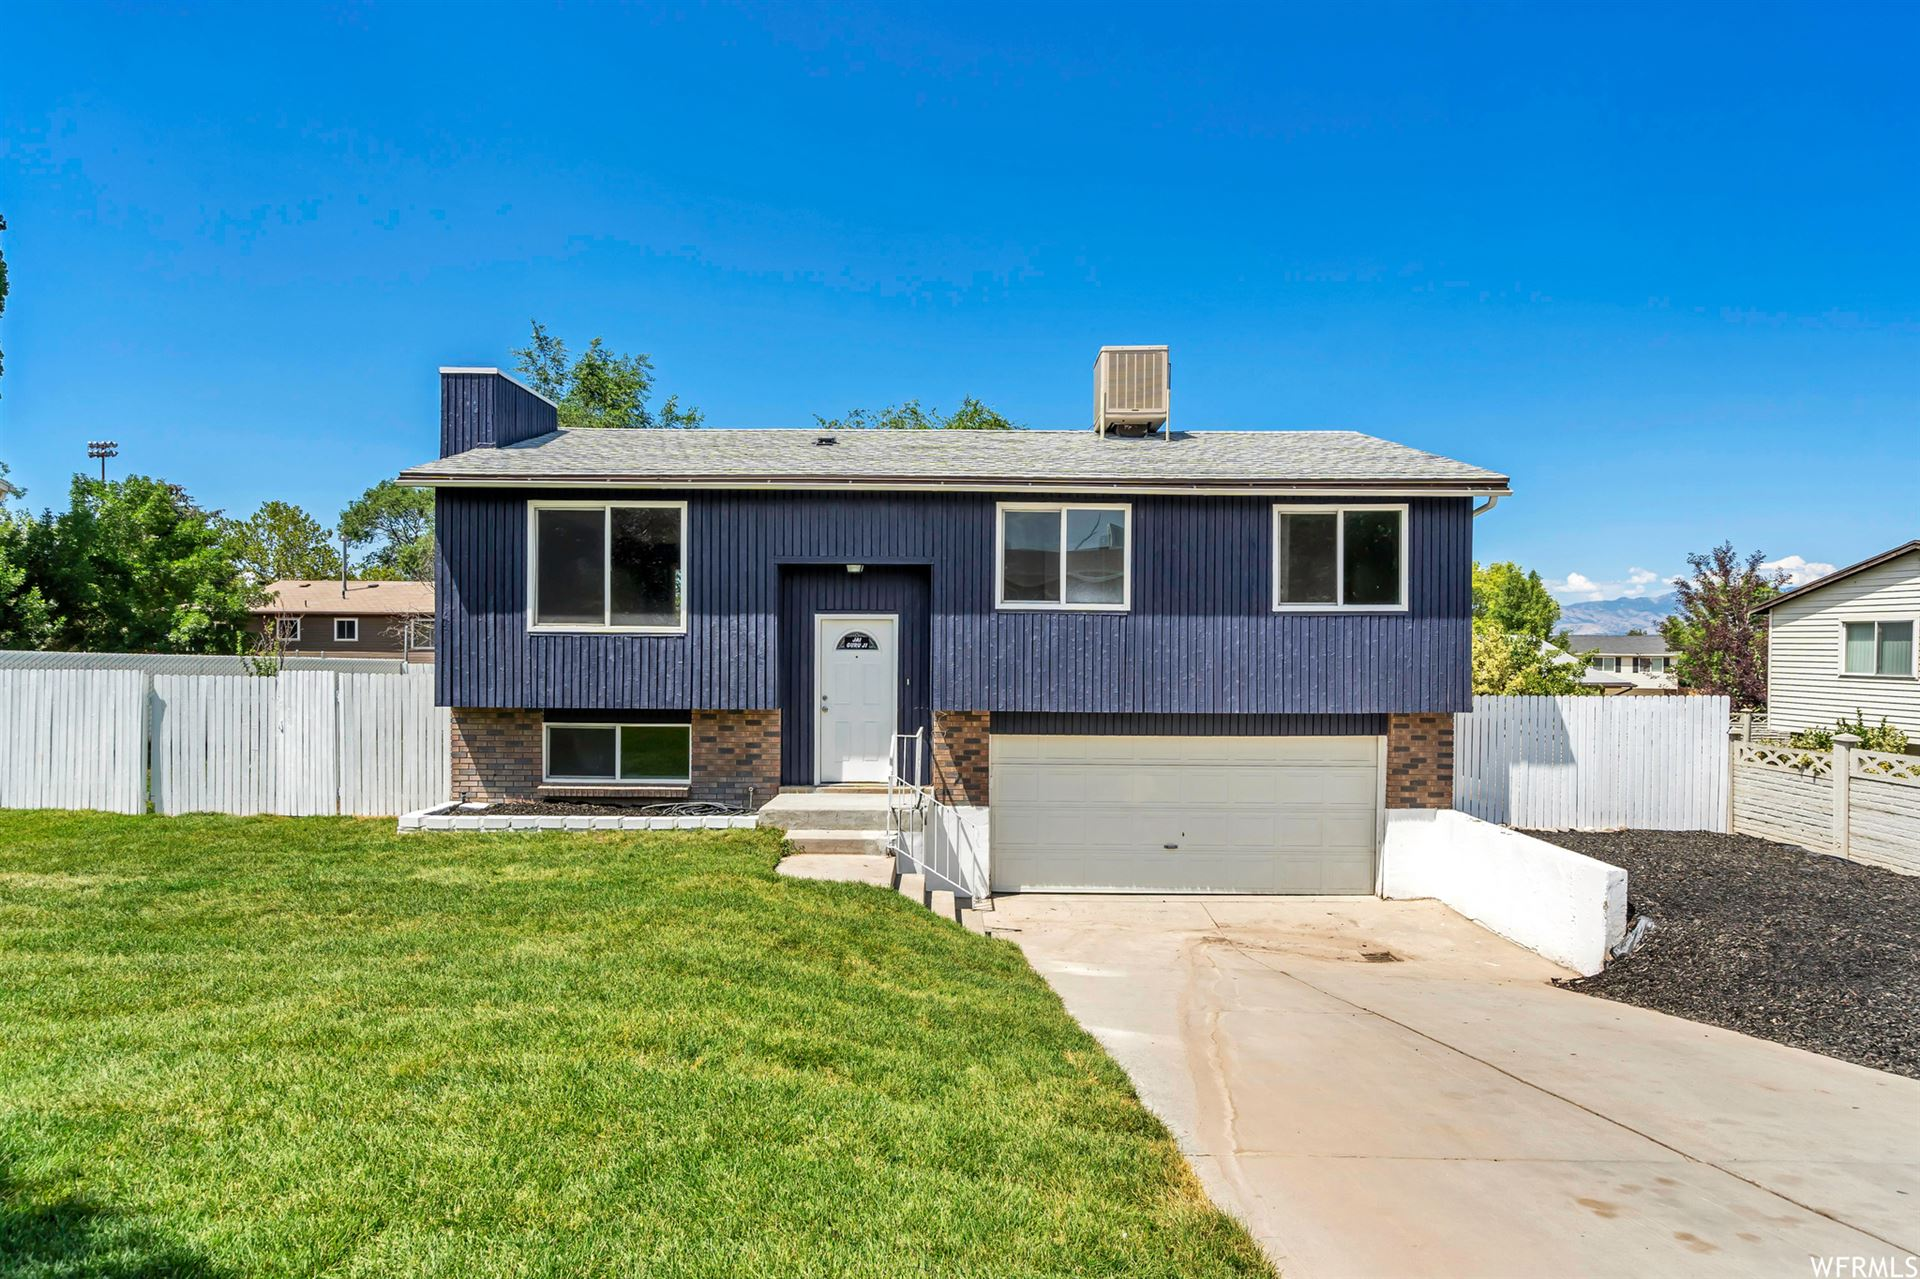 Photo of 3866 SQUIRE CREST DR., Taylorsville, UT 84129 (MLS # 1754321)